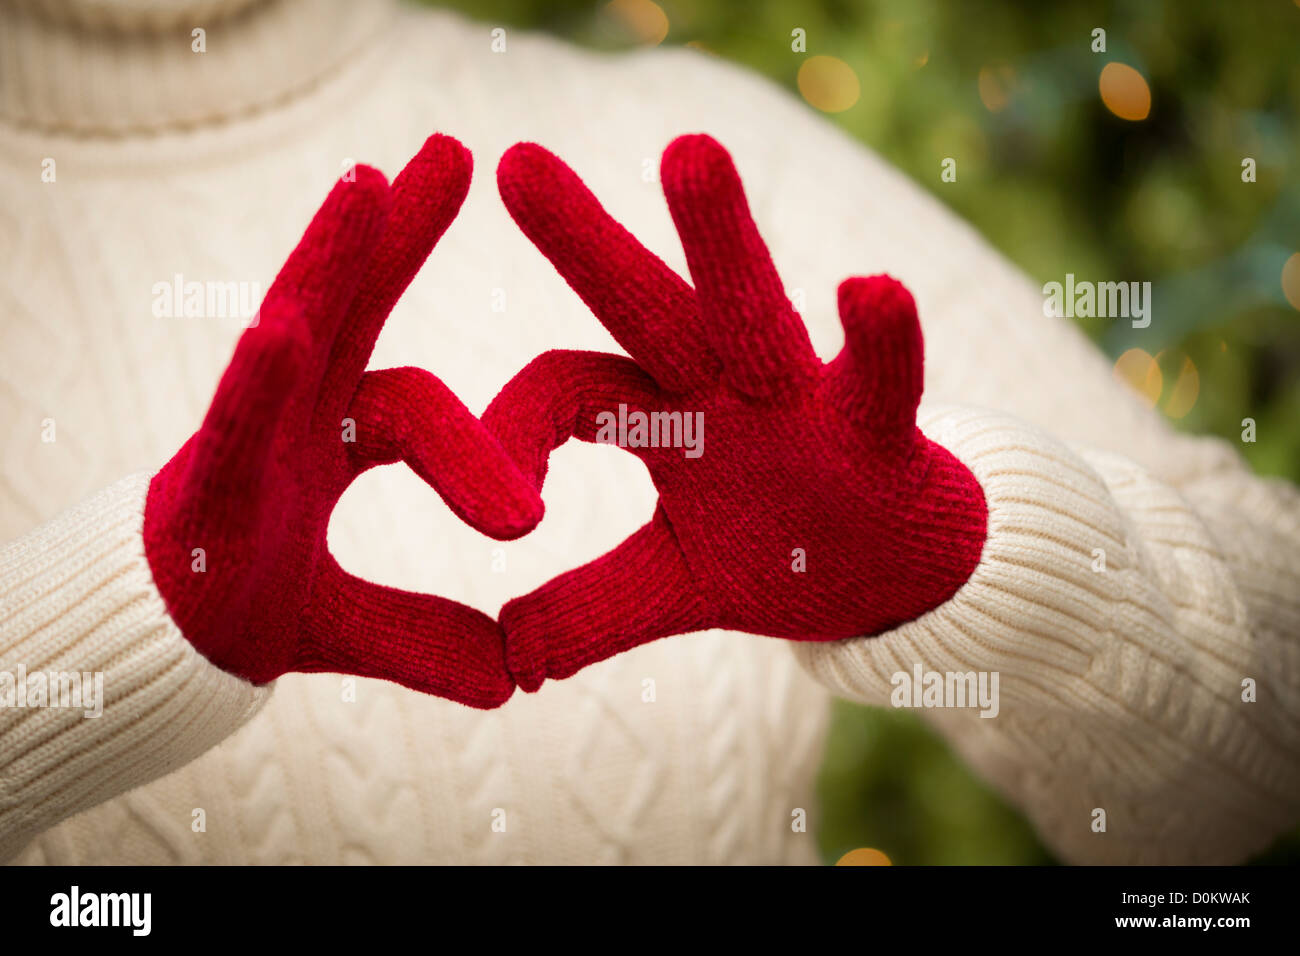 Woman in Sweater with Seasonal Red Mittens Holding Out a Heart Sign with Her Hands. - Stock Image